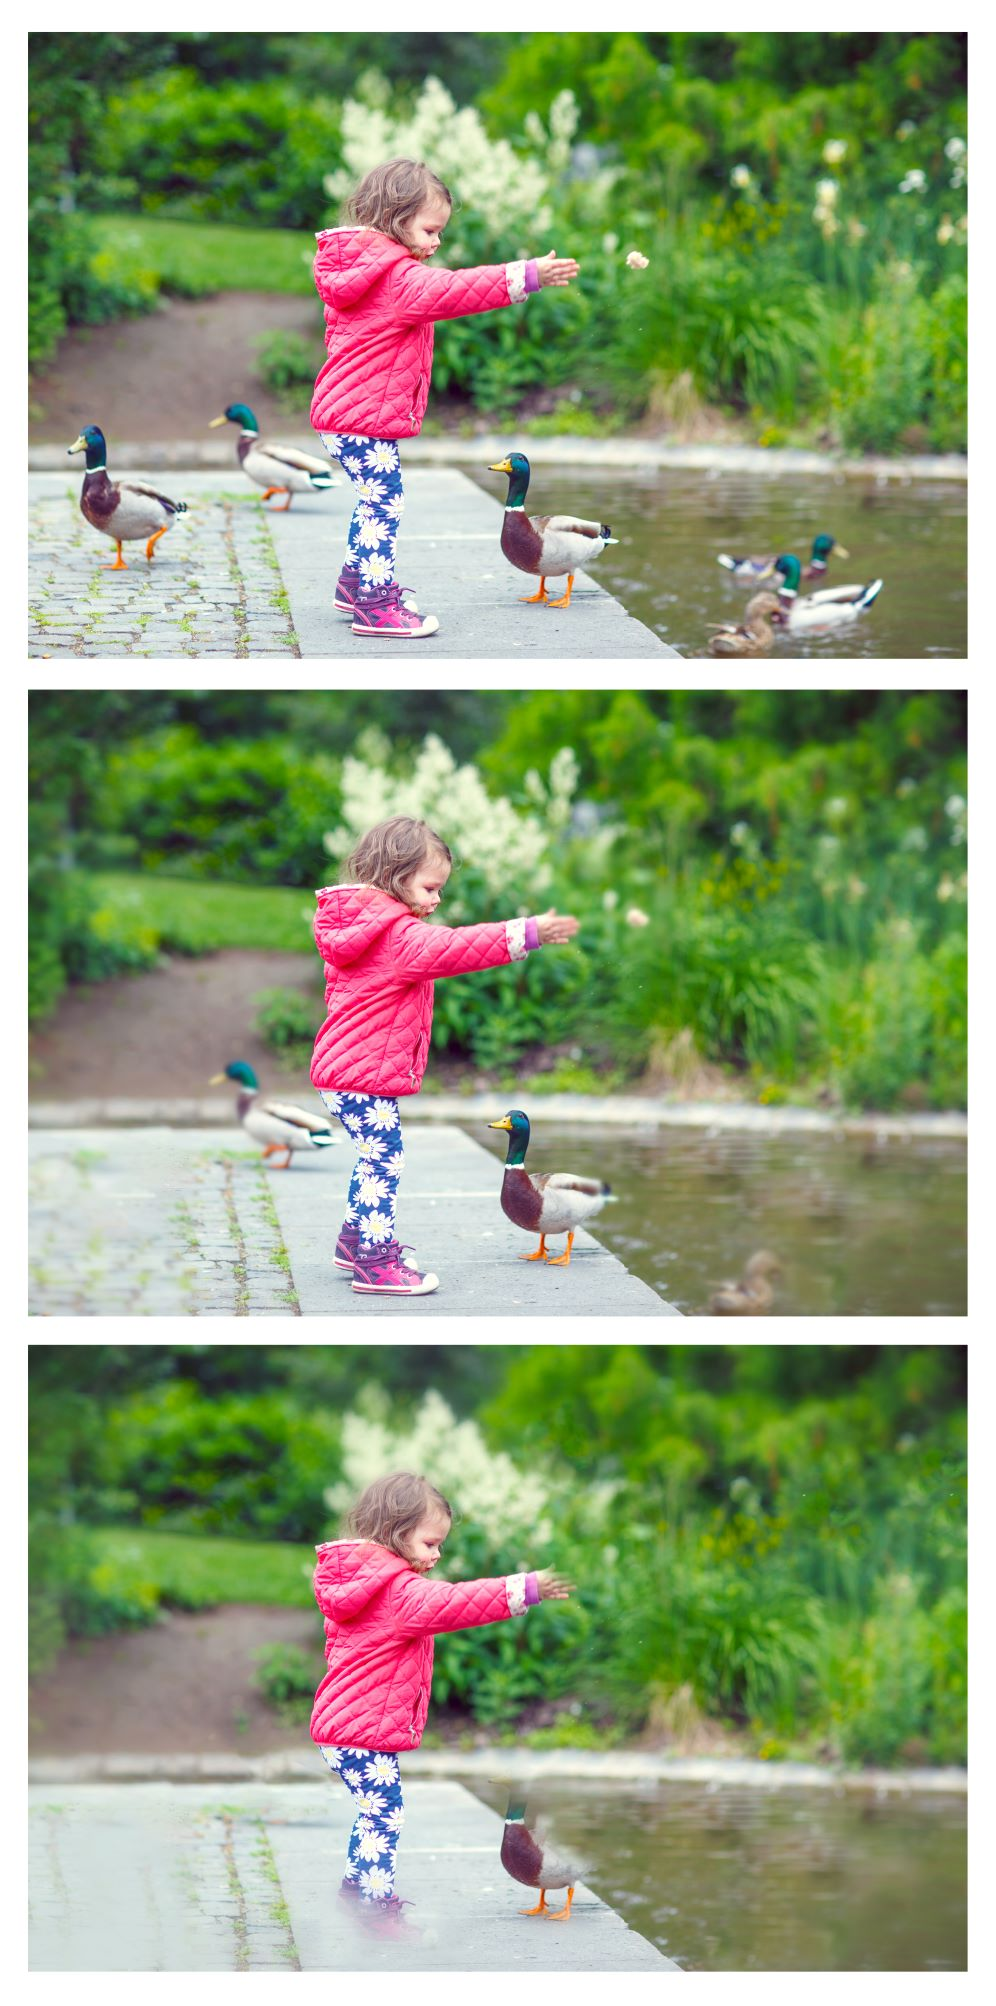 Image shows 3 versions of same photo simulating the reduced detail people with Glaucoma would see. The first image shows a young child feeding 5 ducks. In the 2nd image there is less detail in the periphery so that only 3 ducks are in sight and the final image there is just one duck in the central vision.